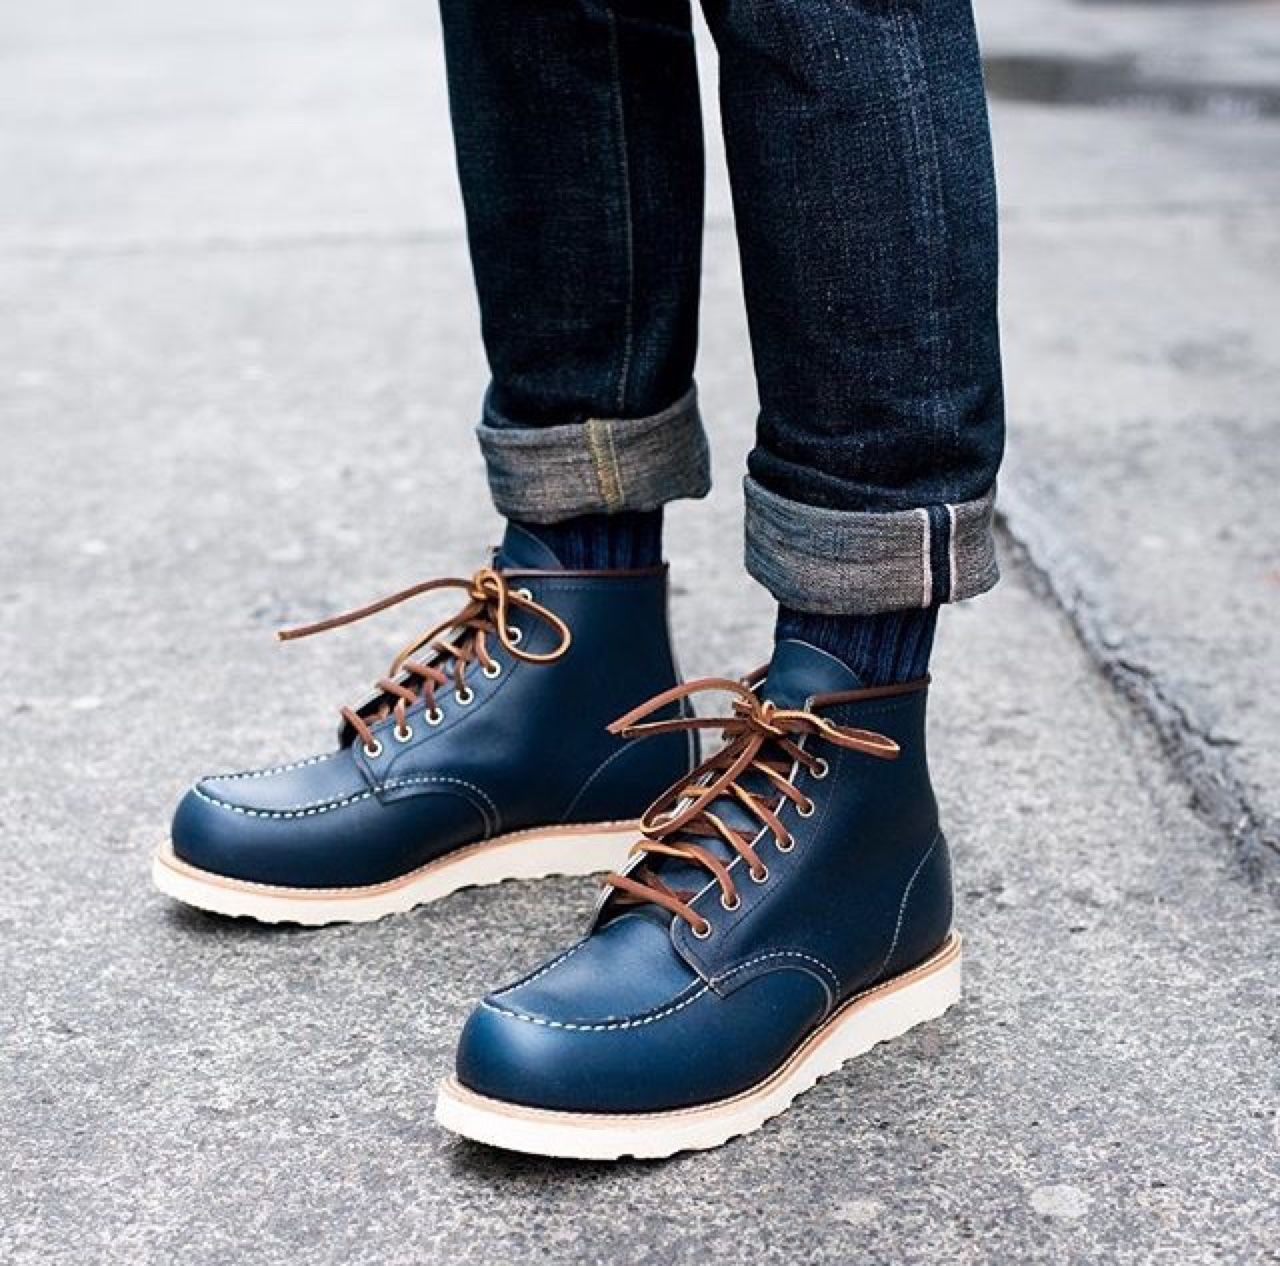 low priced e4b81 c6ce8 Red Wing 8882 Moc-toe Navy Portage | J.Crew | Selvedge ...